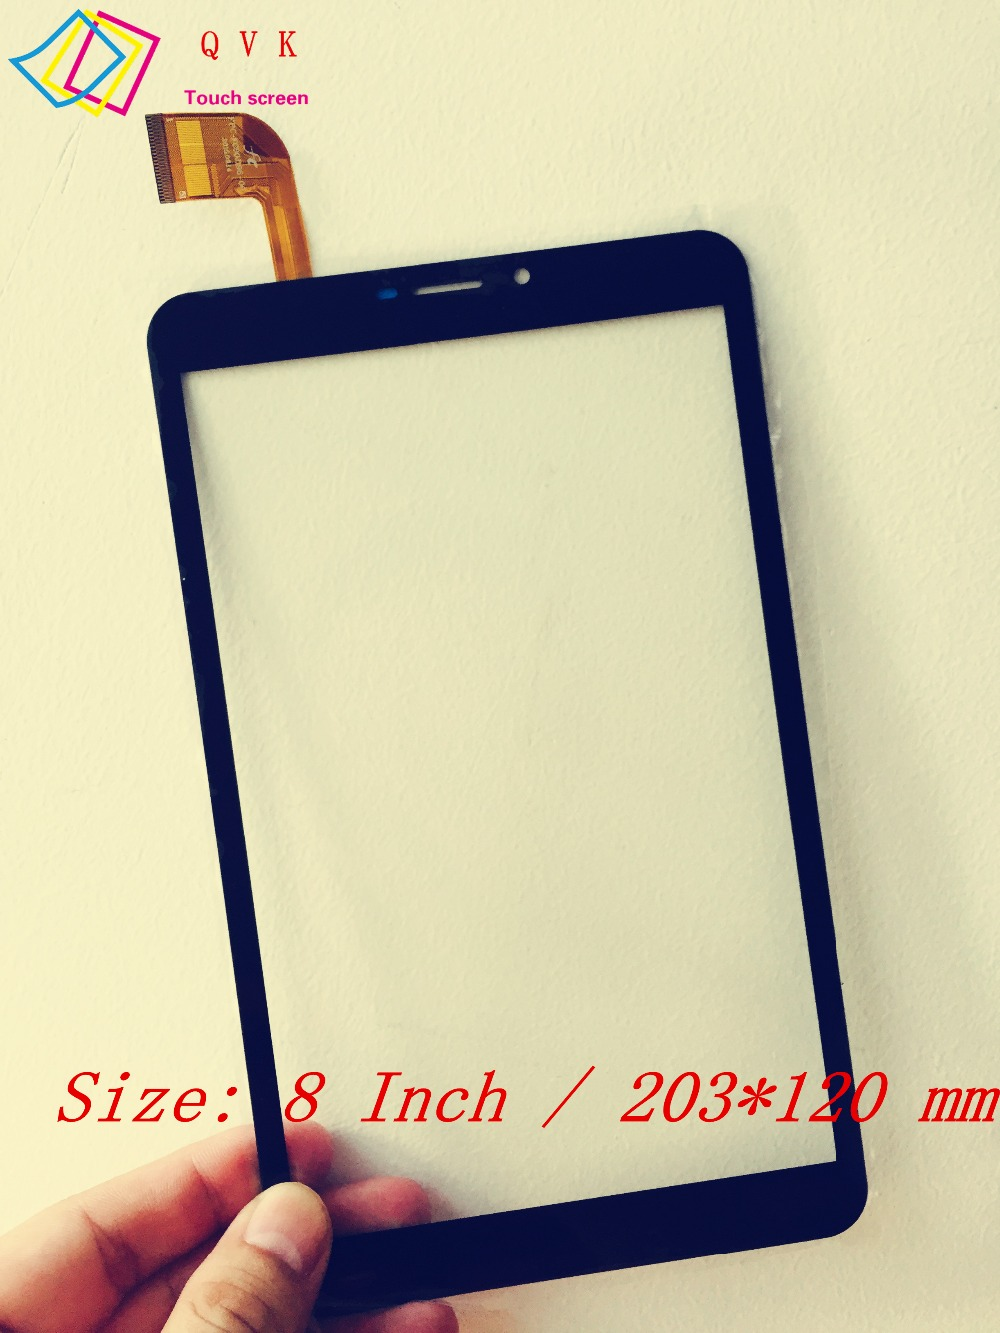 Black 8 Inch P/N HK080PG3162W-V0 Capacitive Touch Screen Panel Repair Replacement Spare Parts Free Shipping